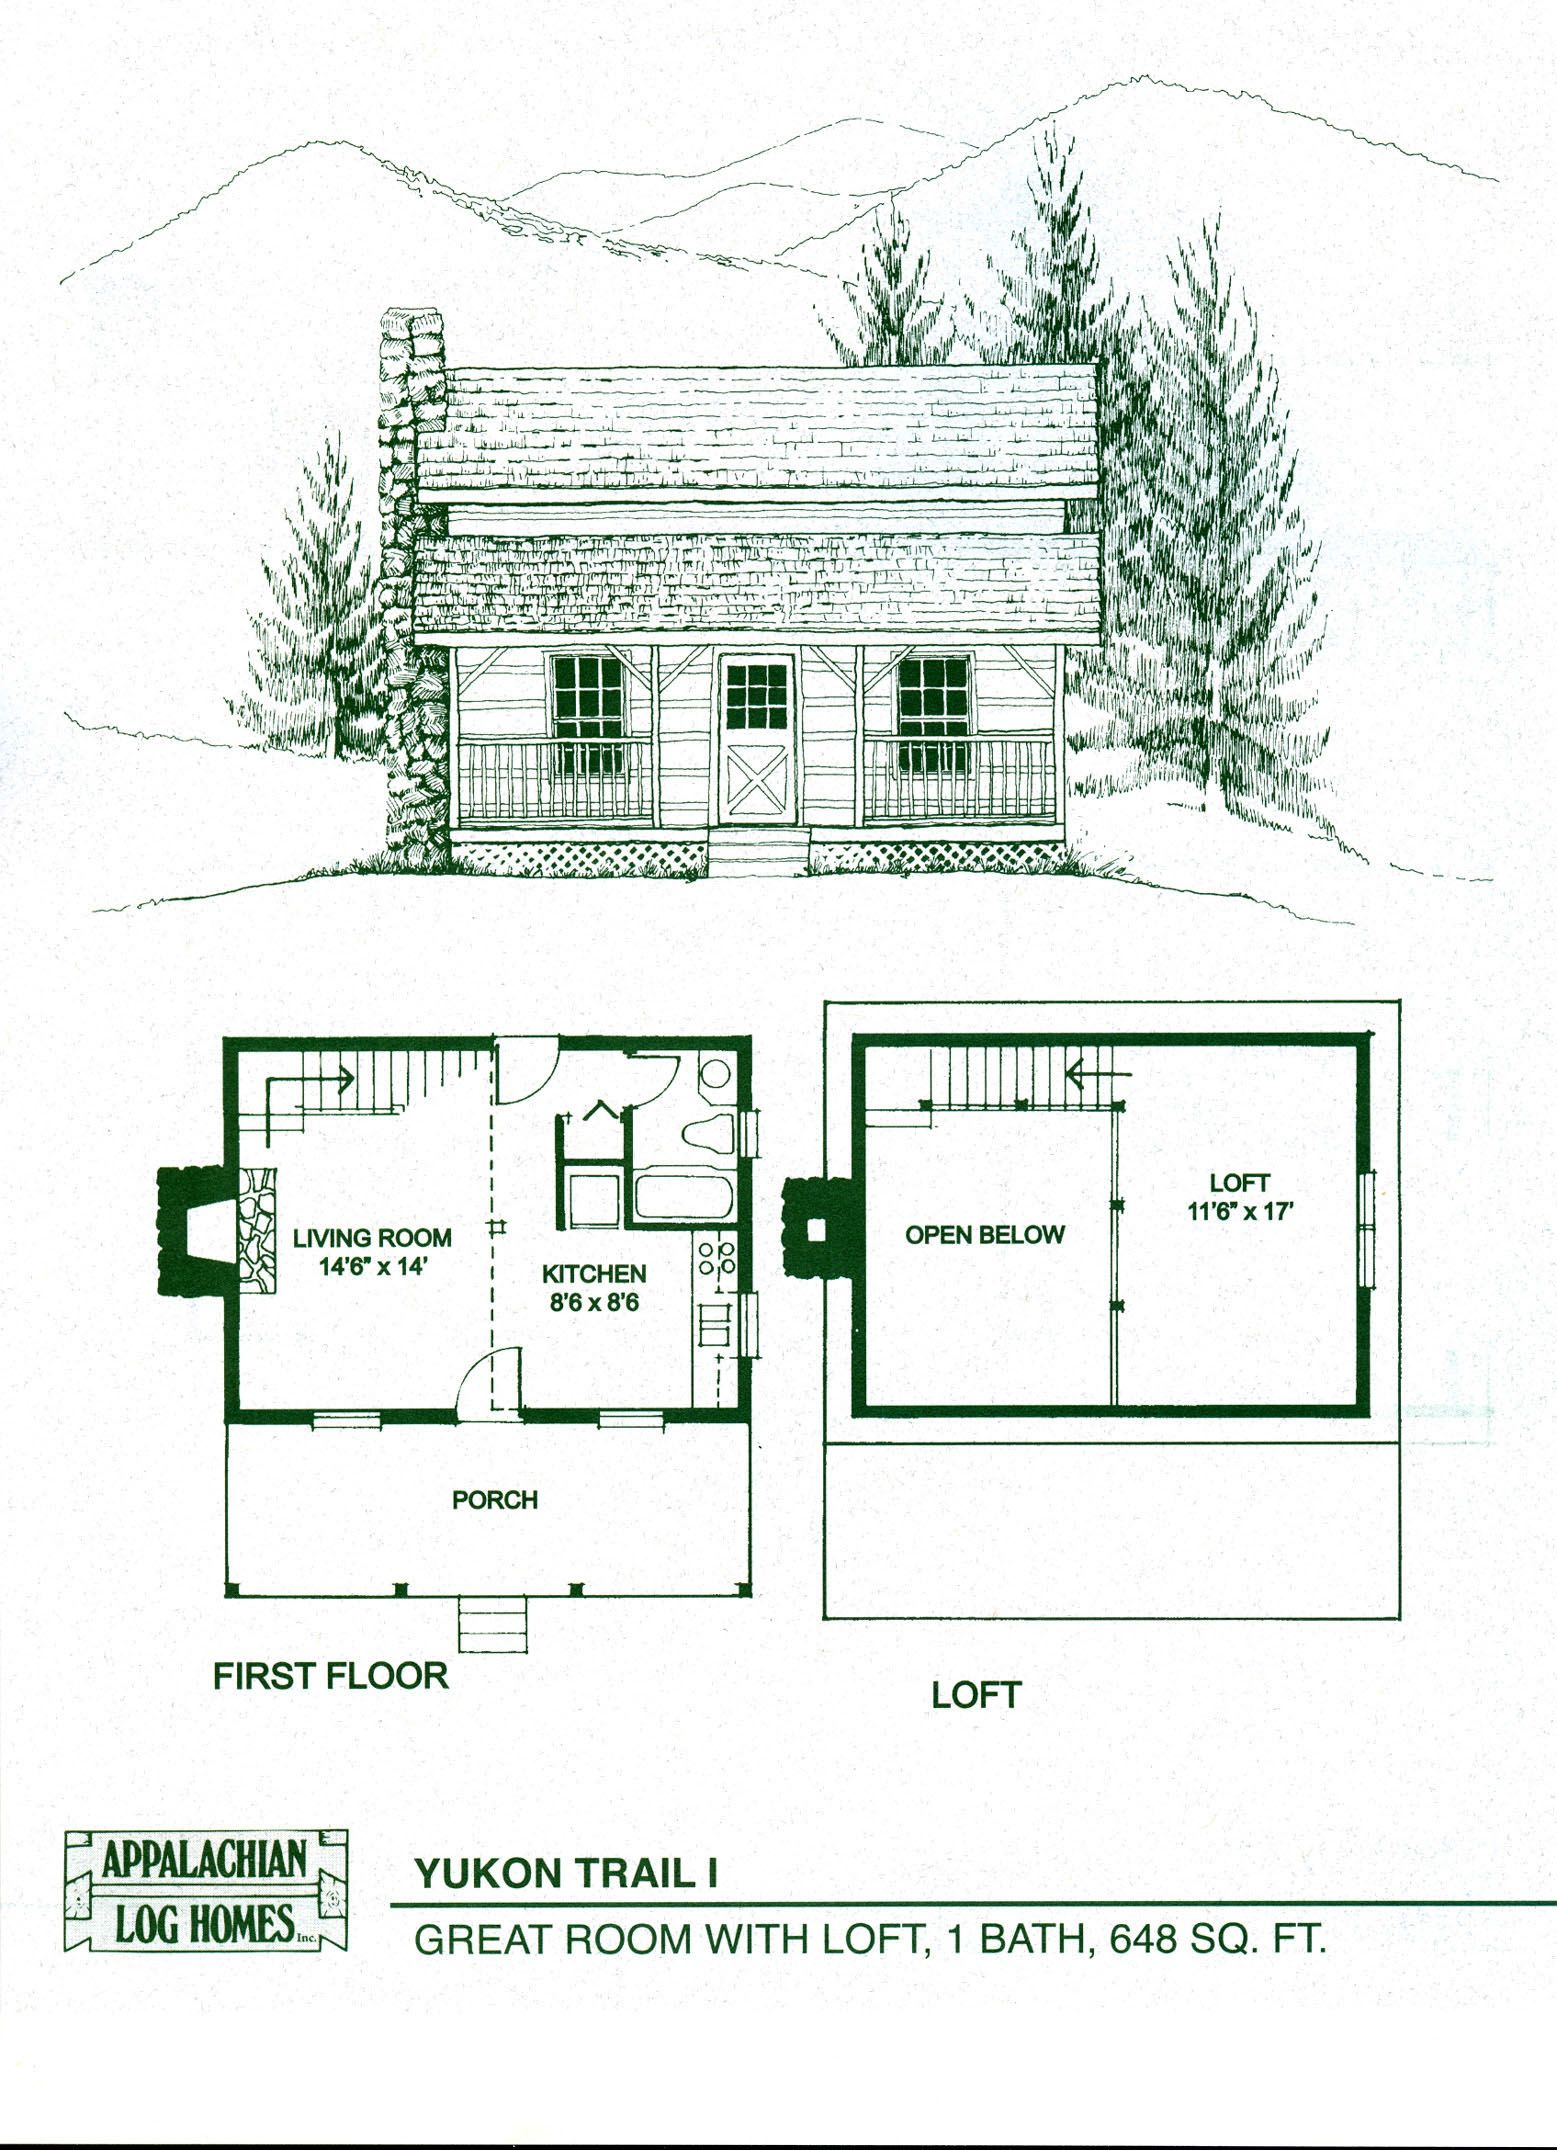 Log home floor plans log cabin kits appalachian log for Lodge home designs